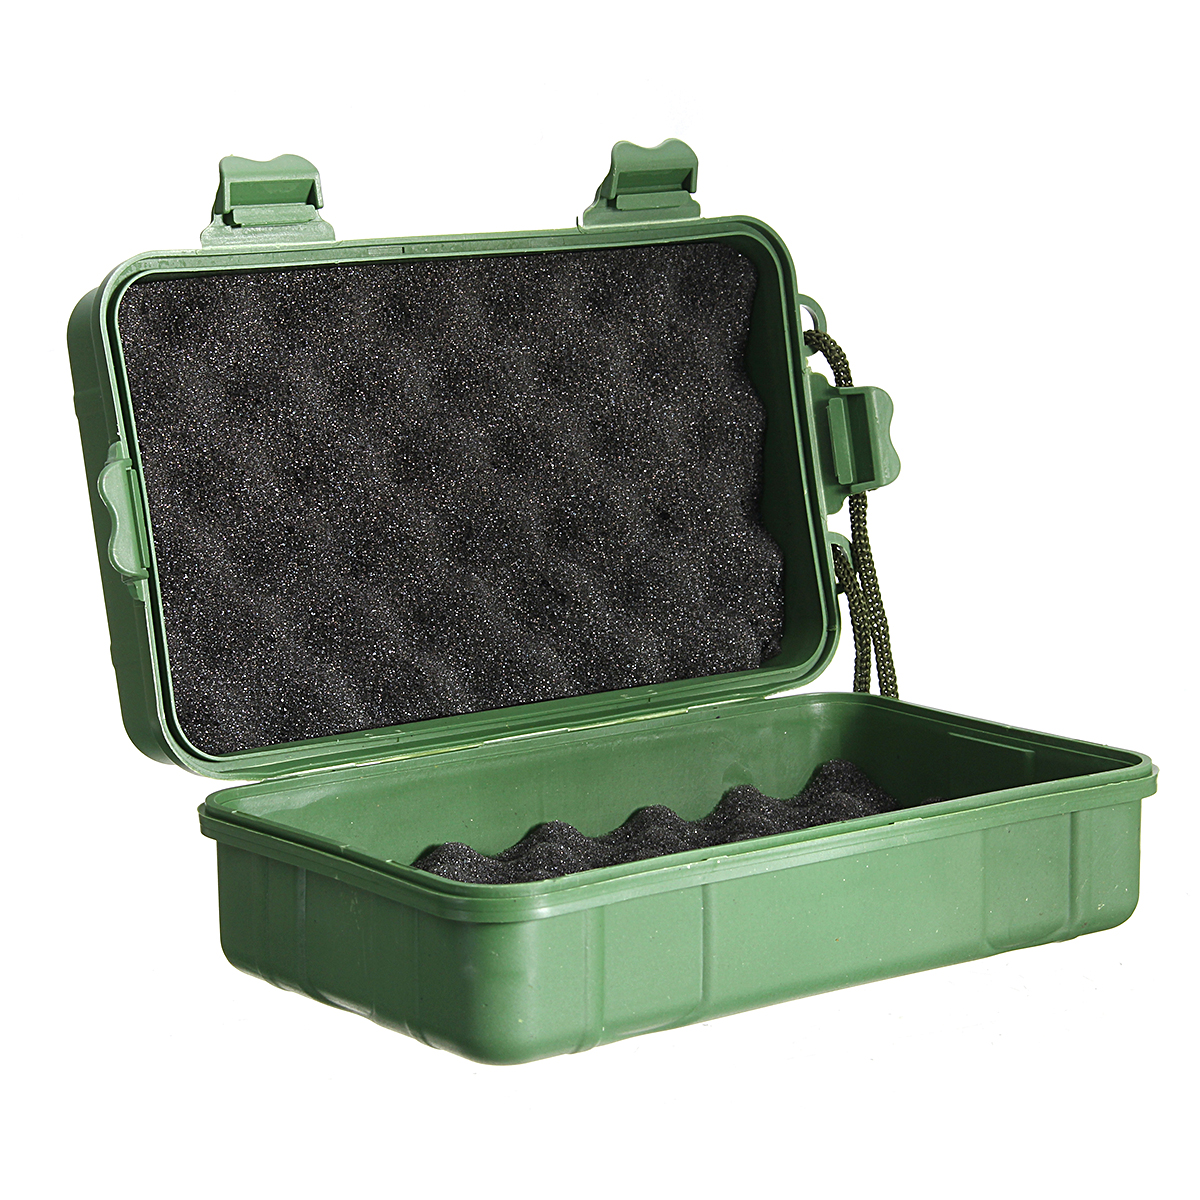 Green Plastic Kit Box Case Storage Holder For Led Flashlight Torch Lamp Light Headlight 21cm/18cm